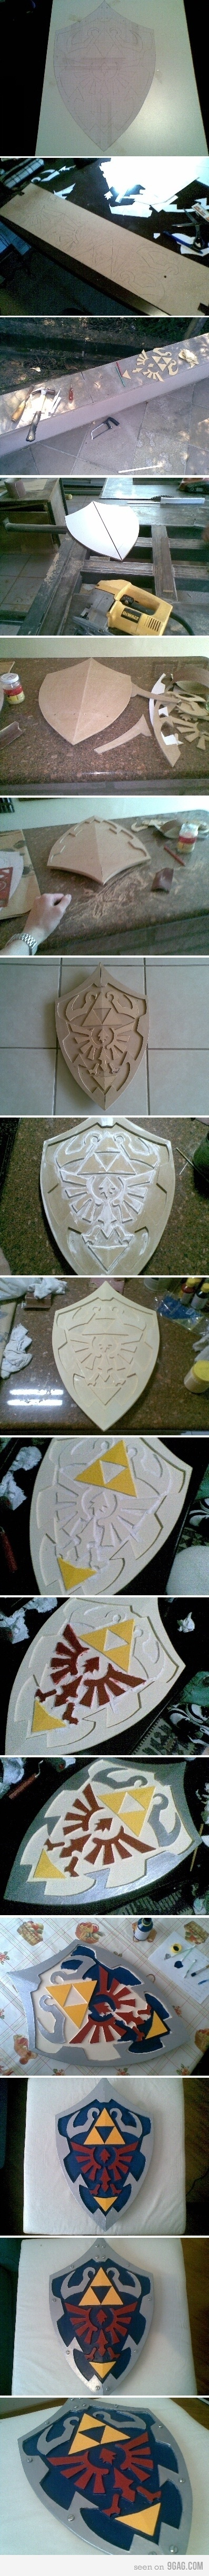 Cool idea. I would make this out of cardboard and paper mache